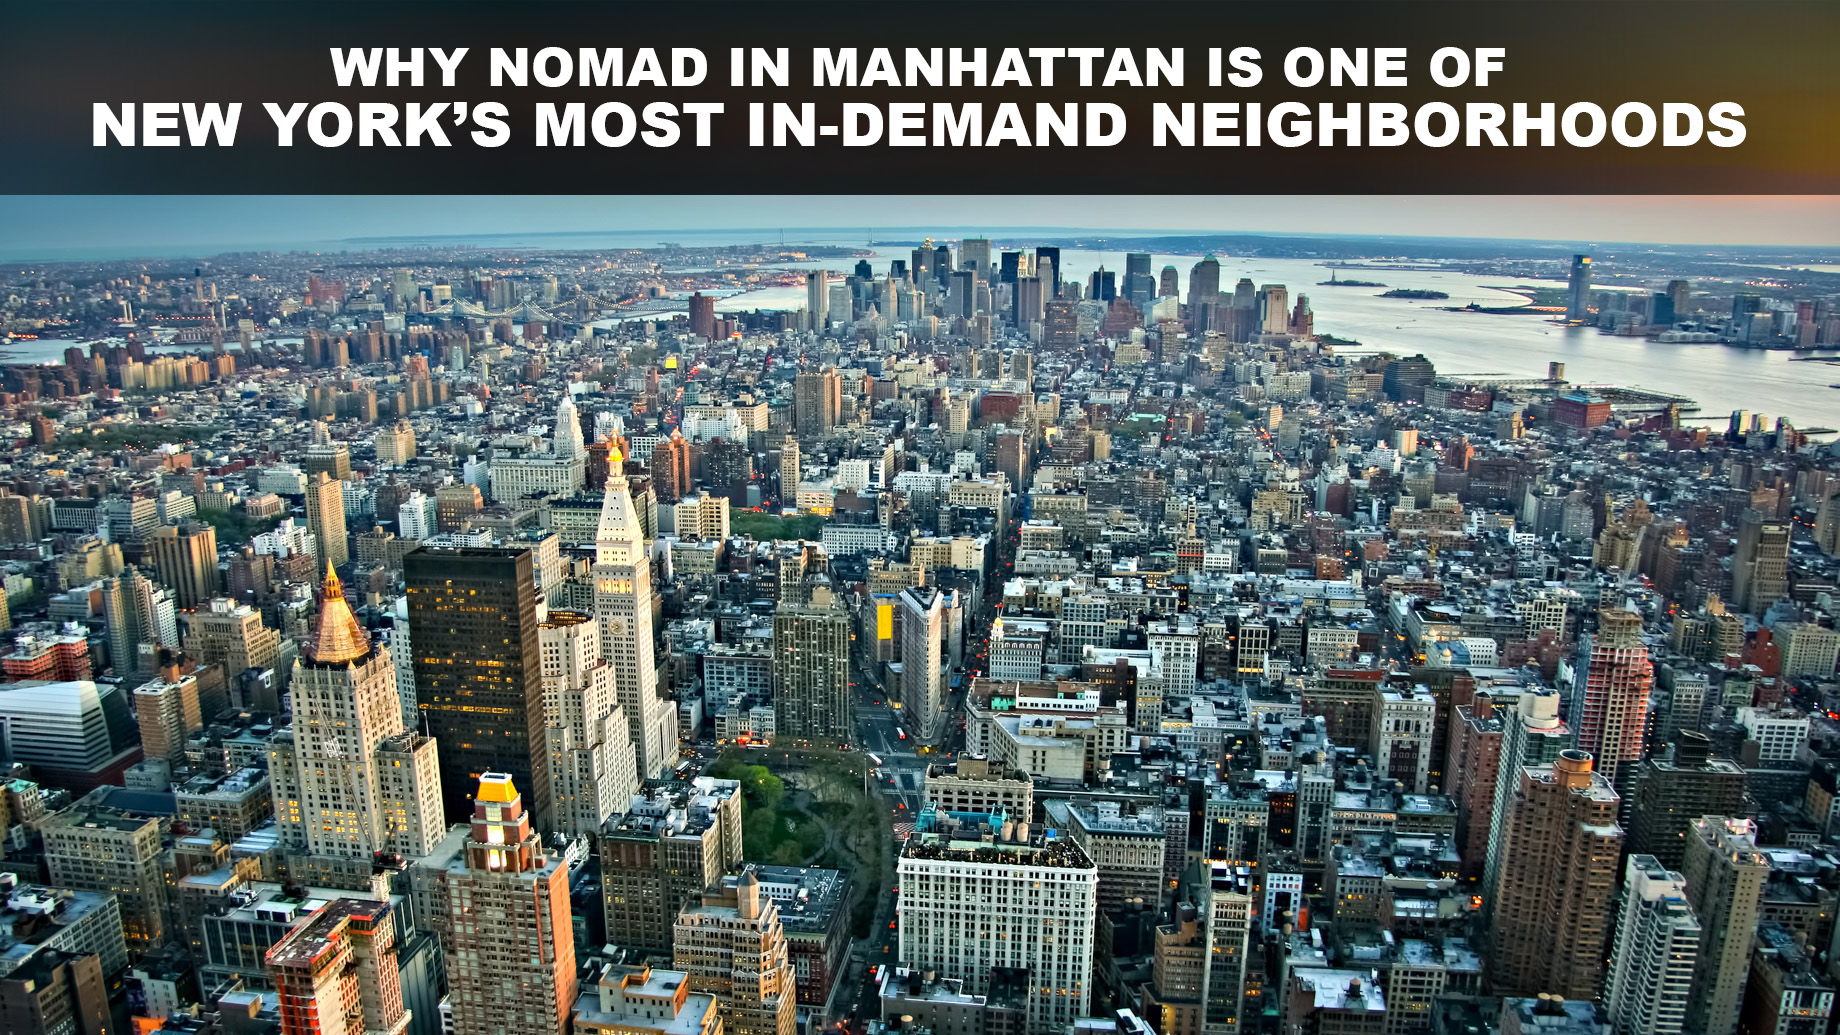 Why NoMad in Manhattan is One of New York's Most In-Demand Neighborhoods